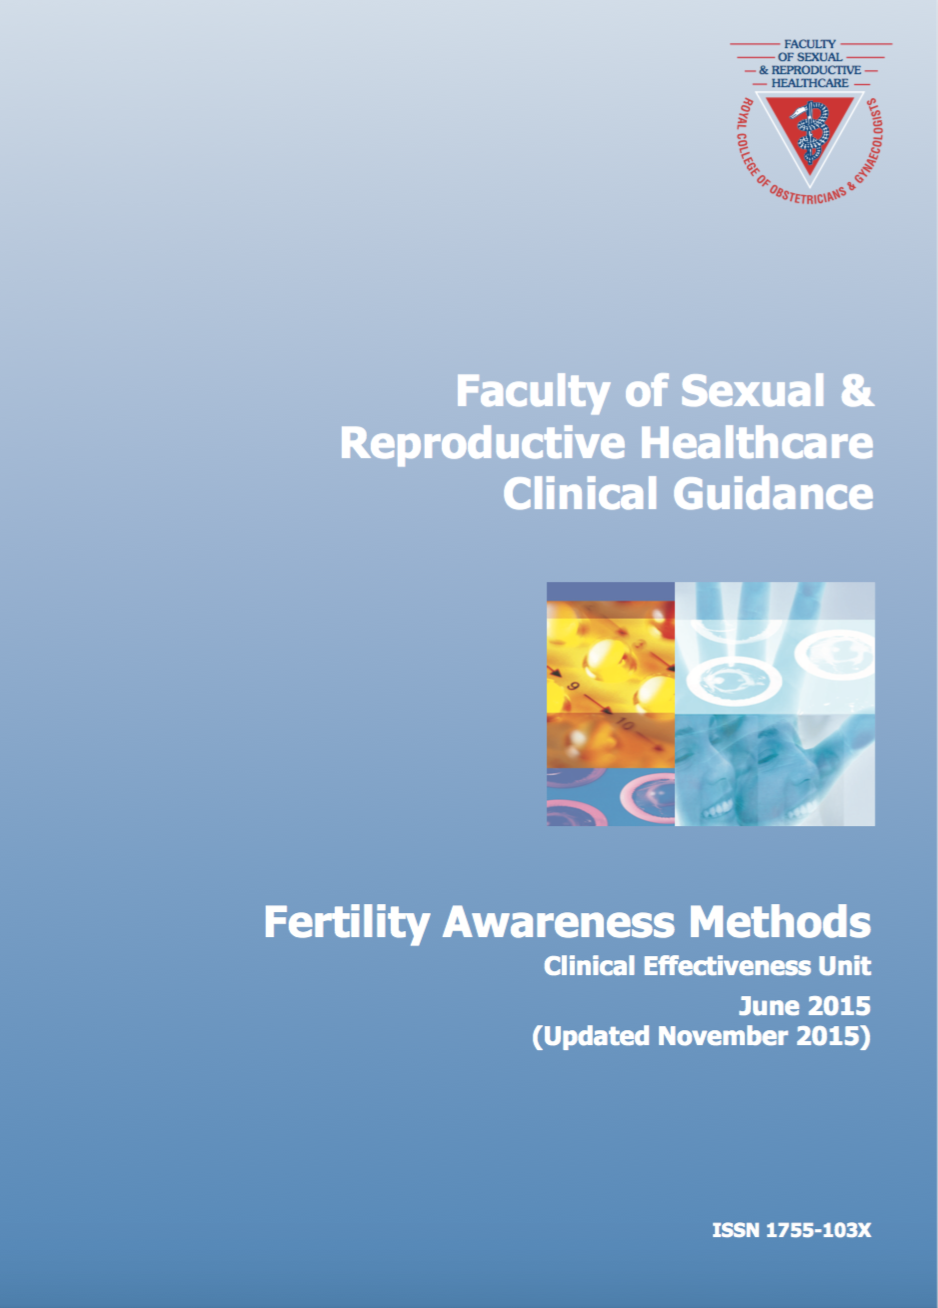 Faculty of sexual and reproductive health care guidelines